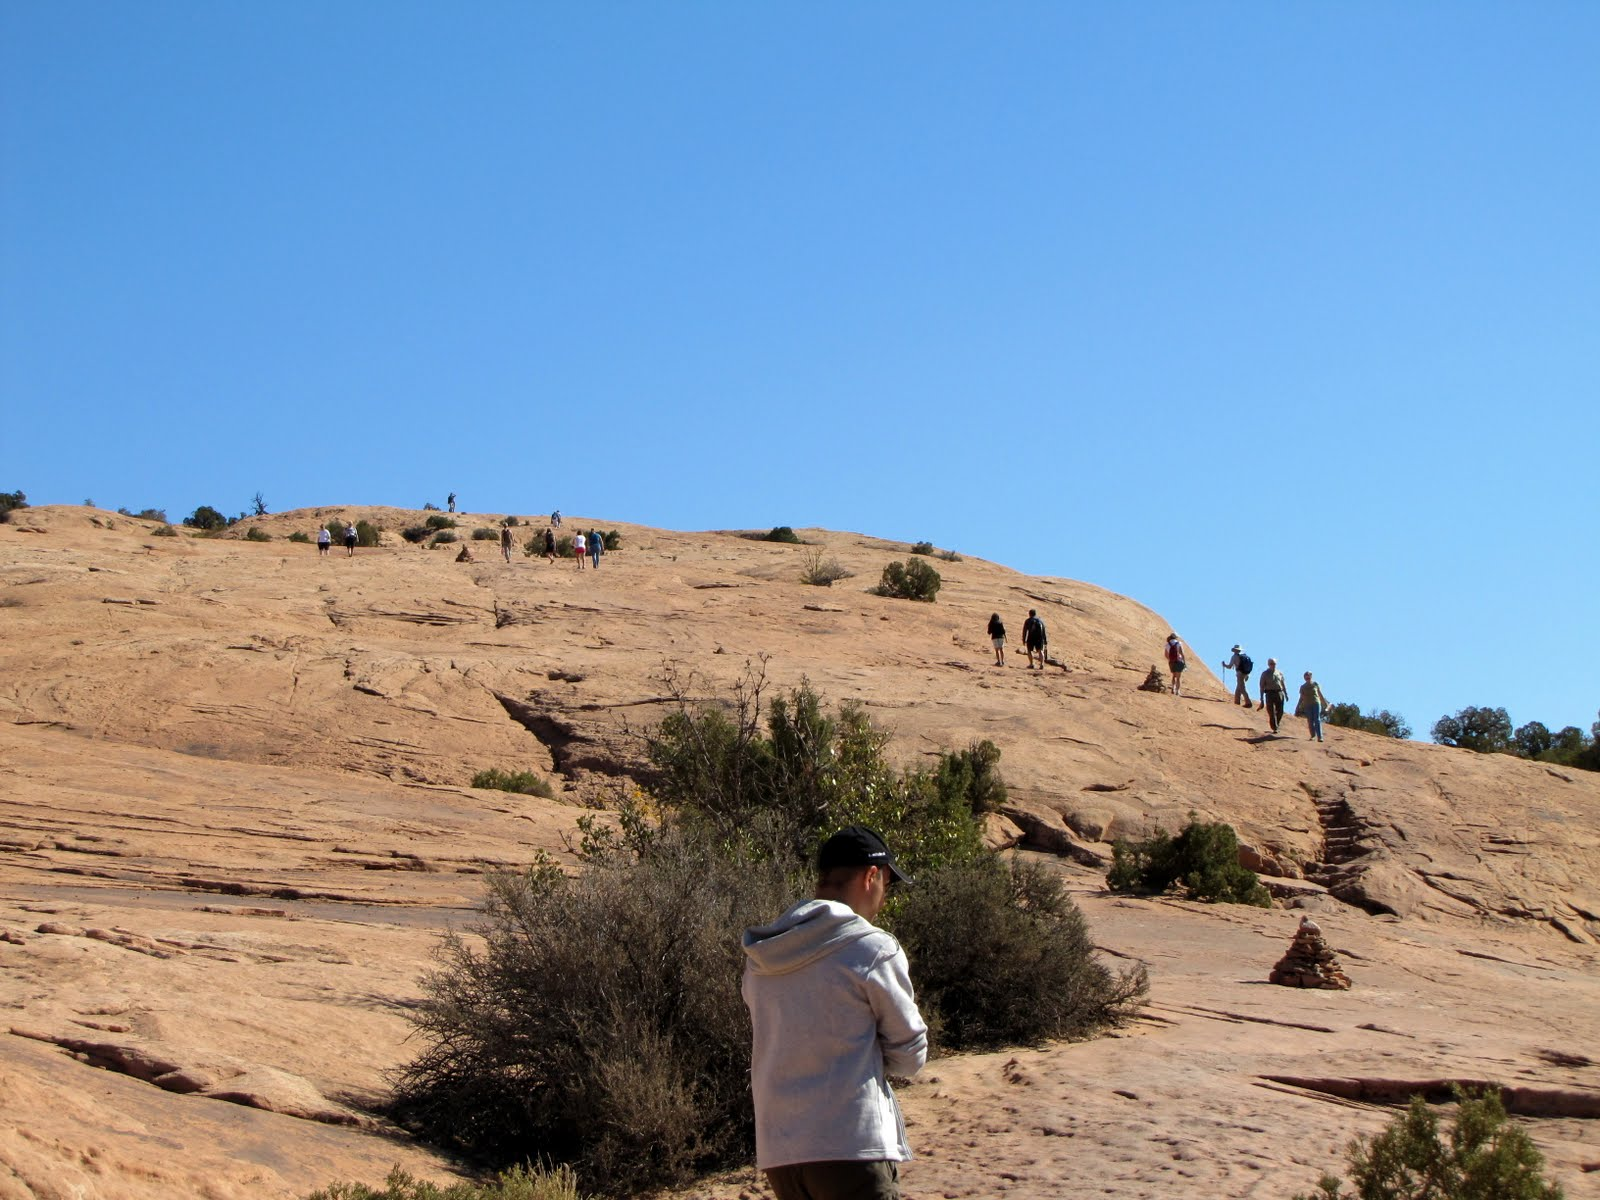 Climbing up to the Delicate Arch